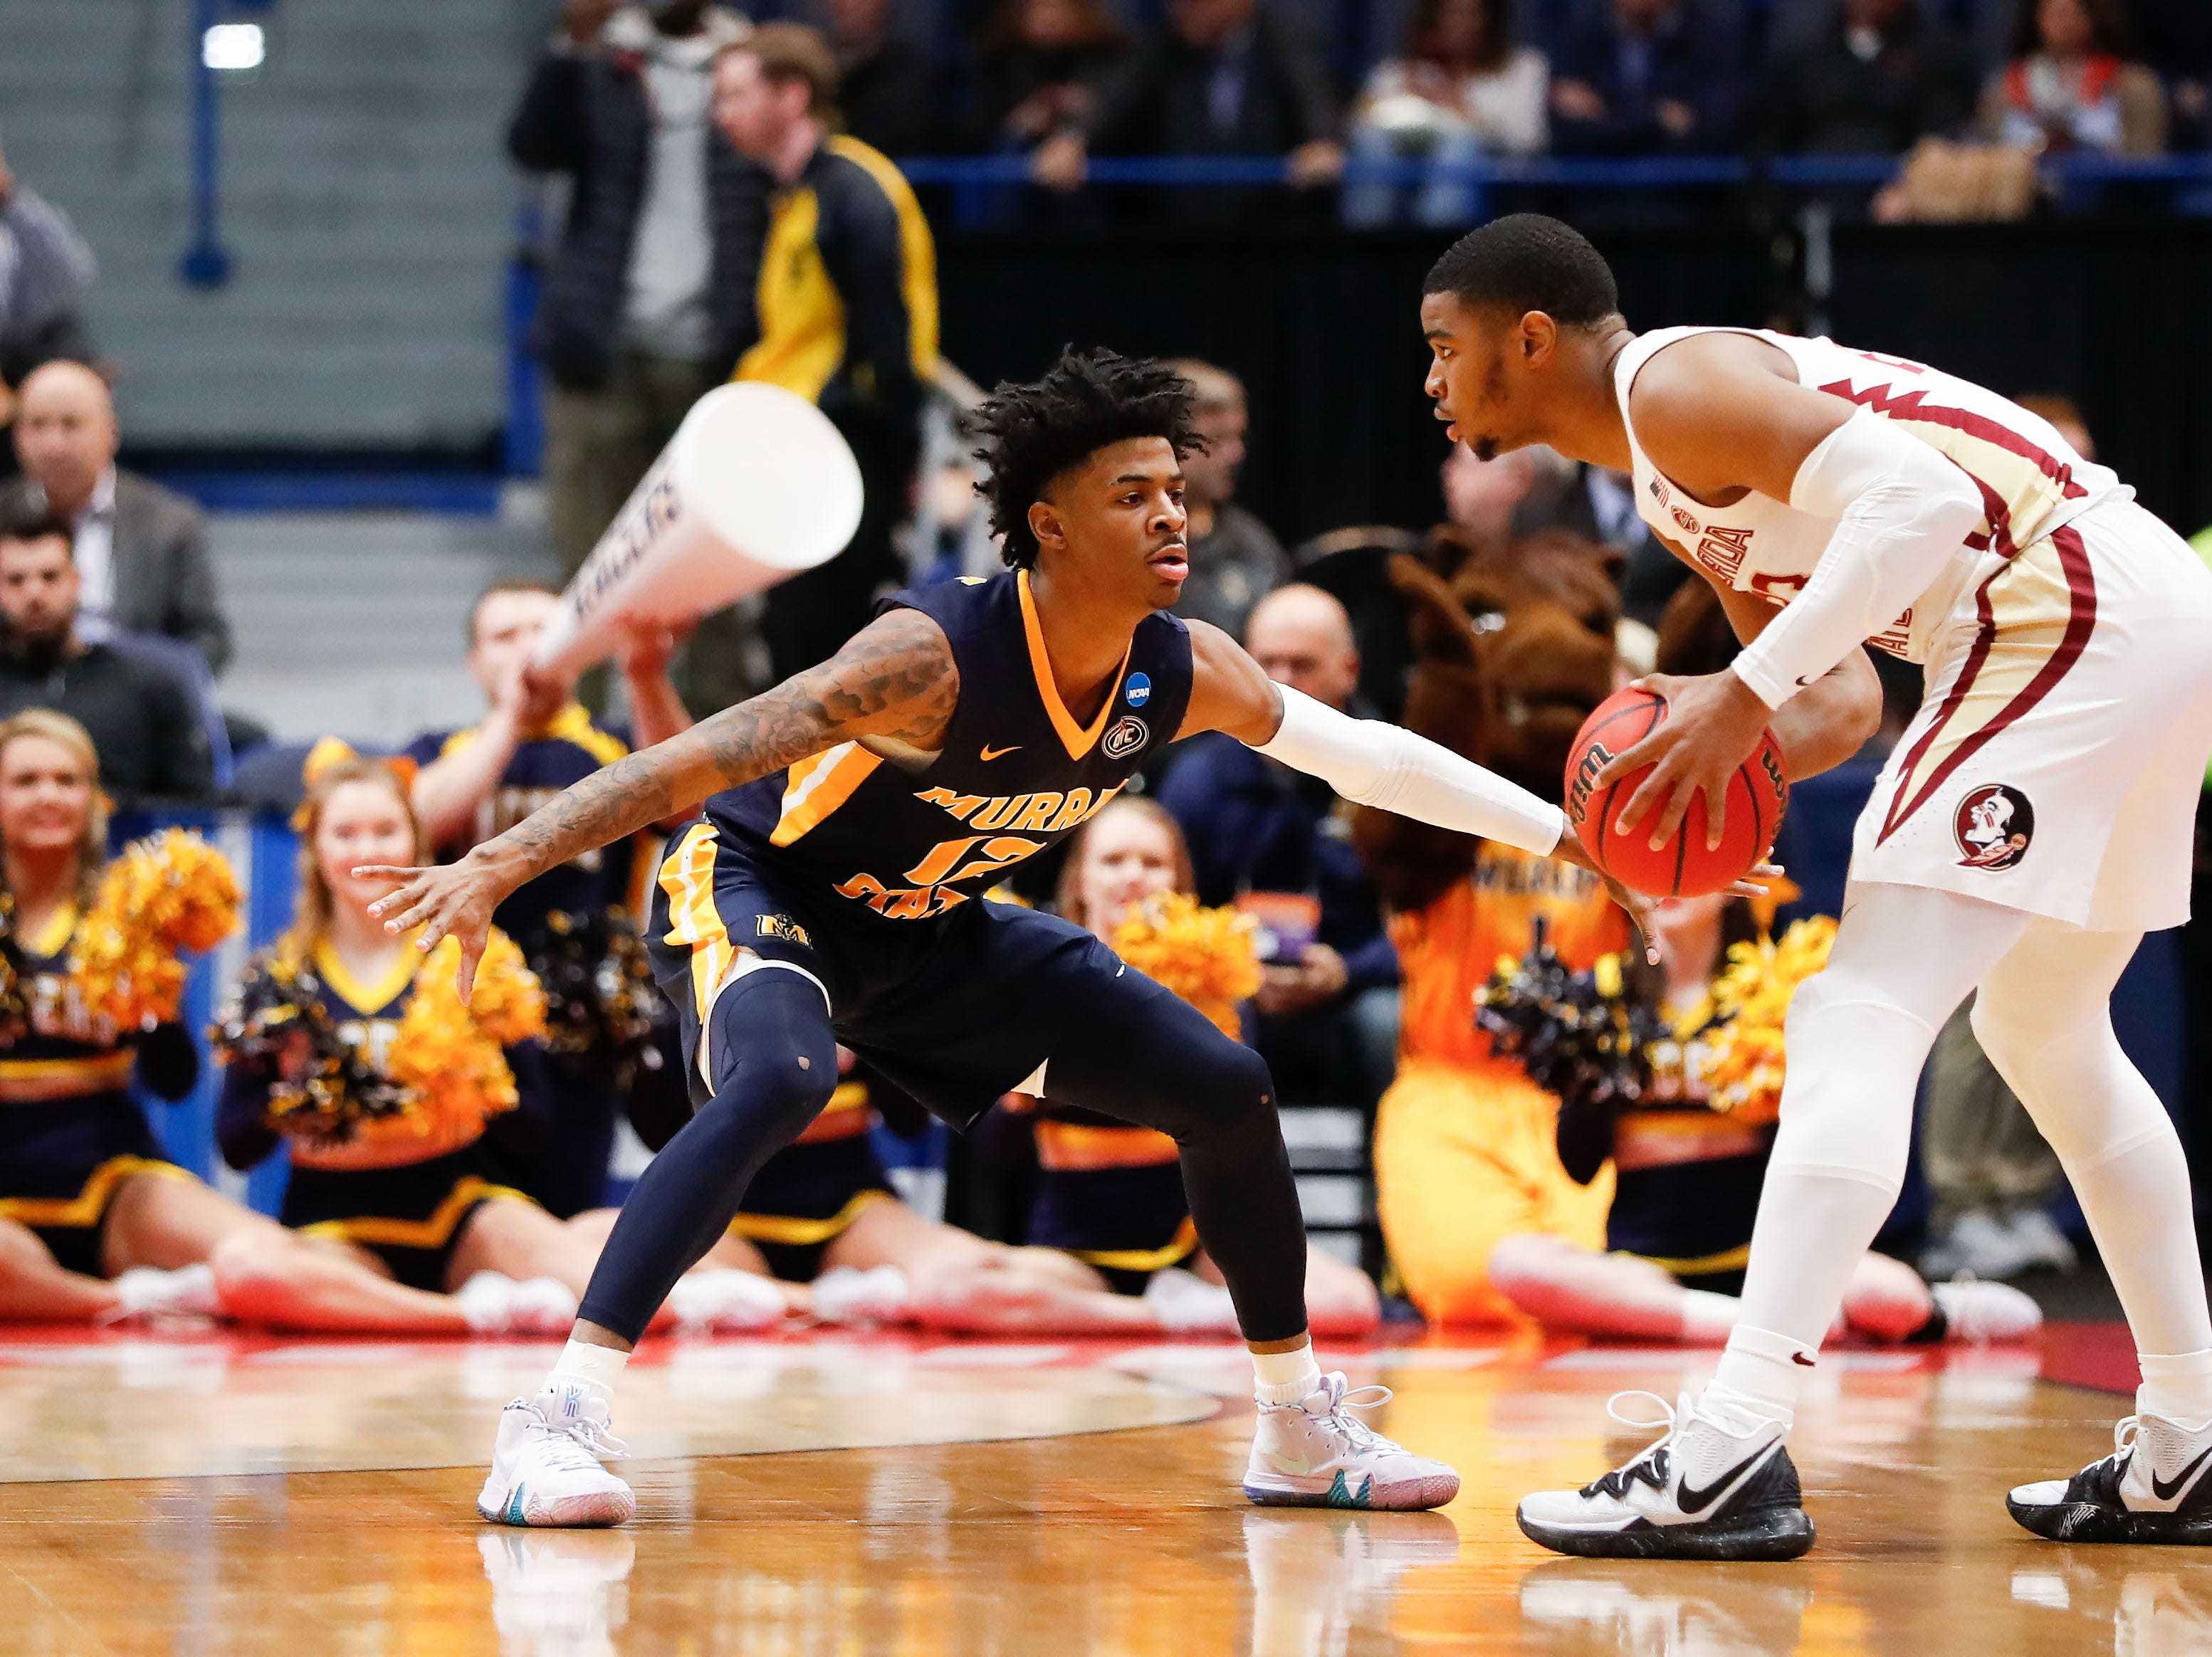 Mar 23, 2019; Hartford, CT, USA; Murray State Racers guard Ja Morant (12) defends Florida State Seminoles guard M.J. Walker (23) during the first half of a game in the second round of the 2019 NCAA Tournament at XL Center. Mandatory Credit: David Butler II-USA TODAY Sports